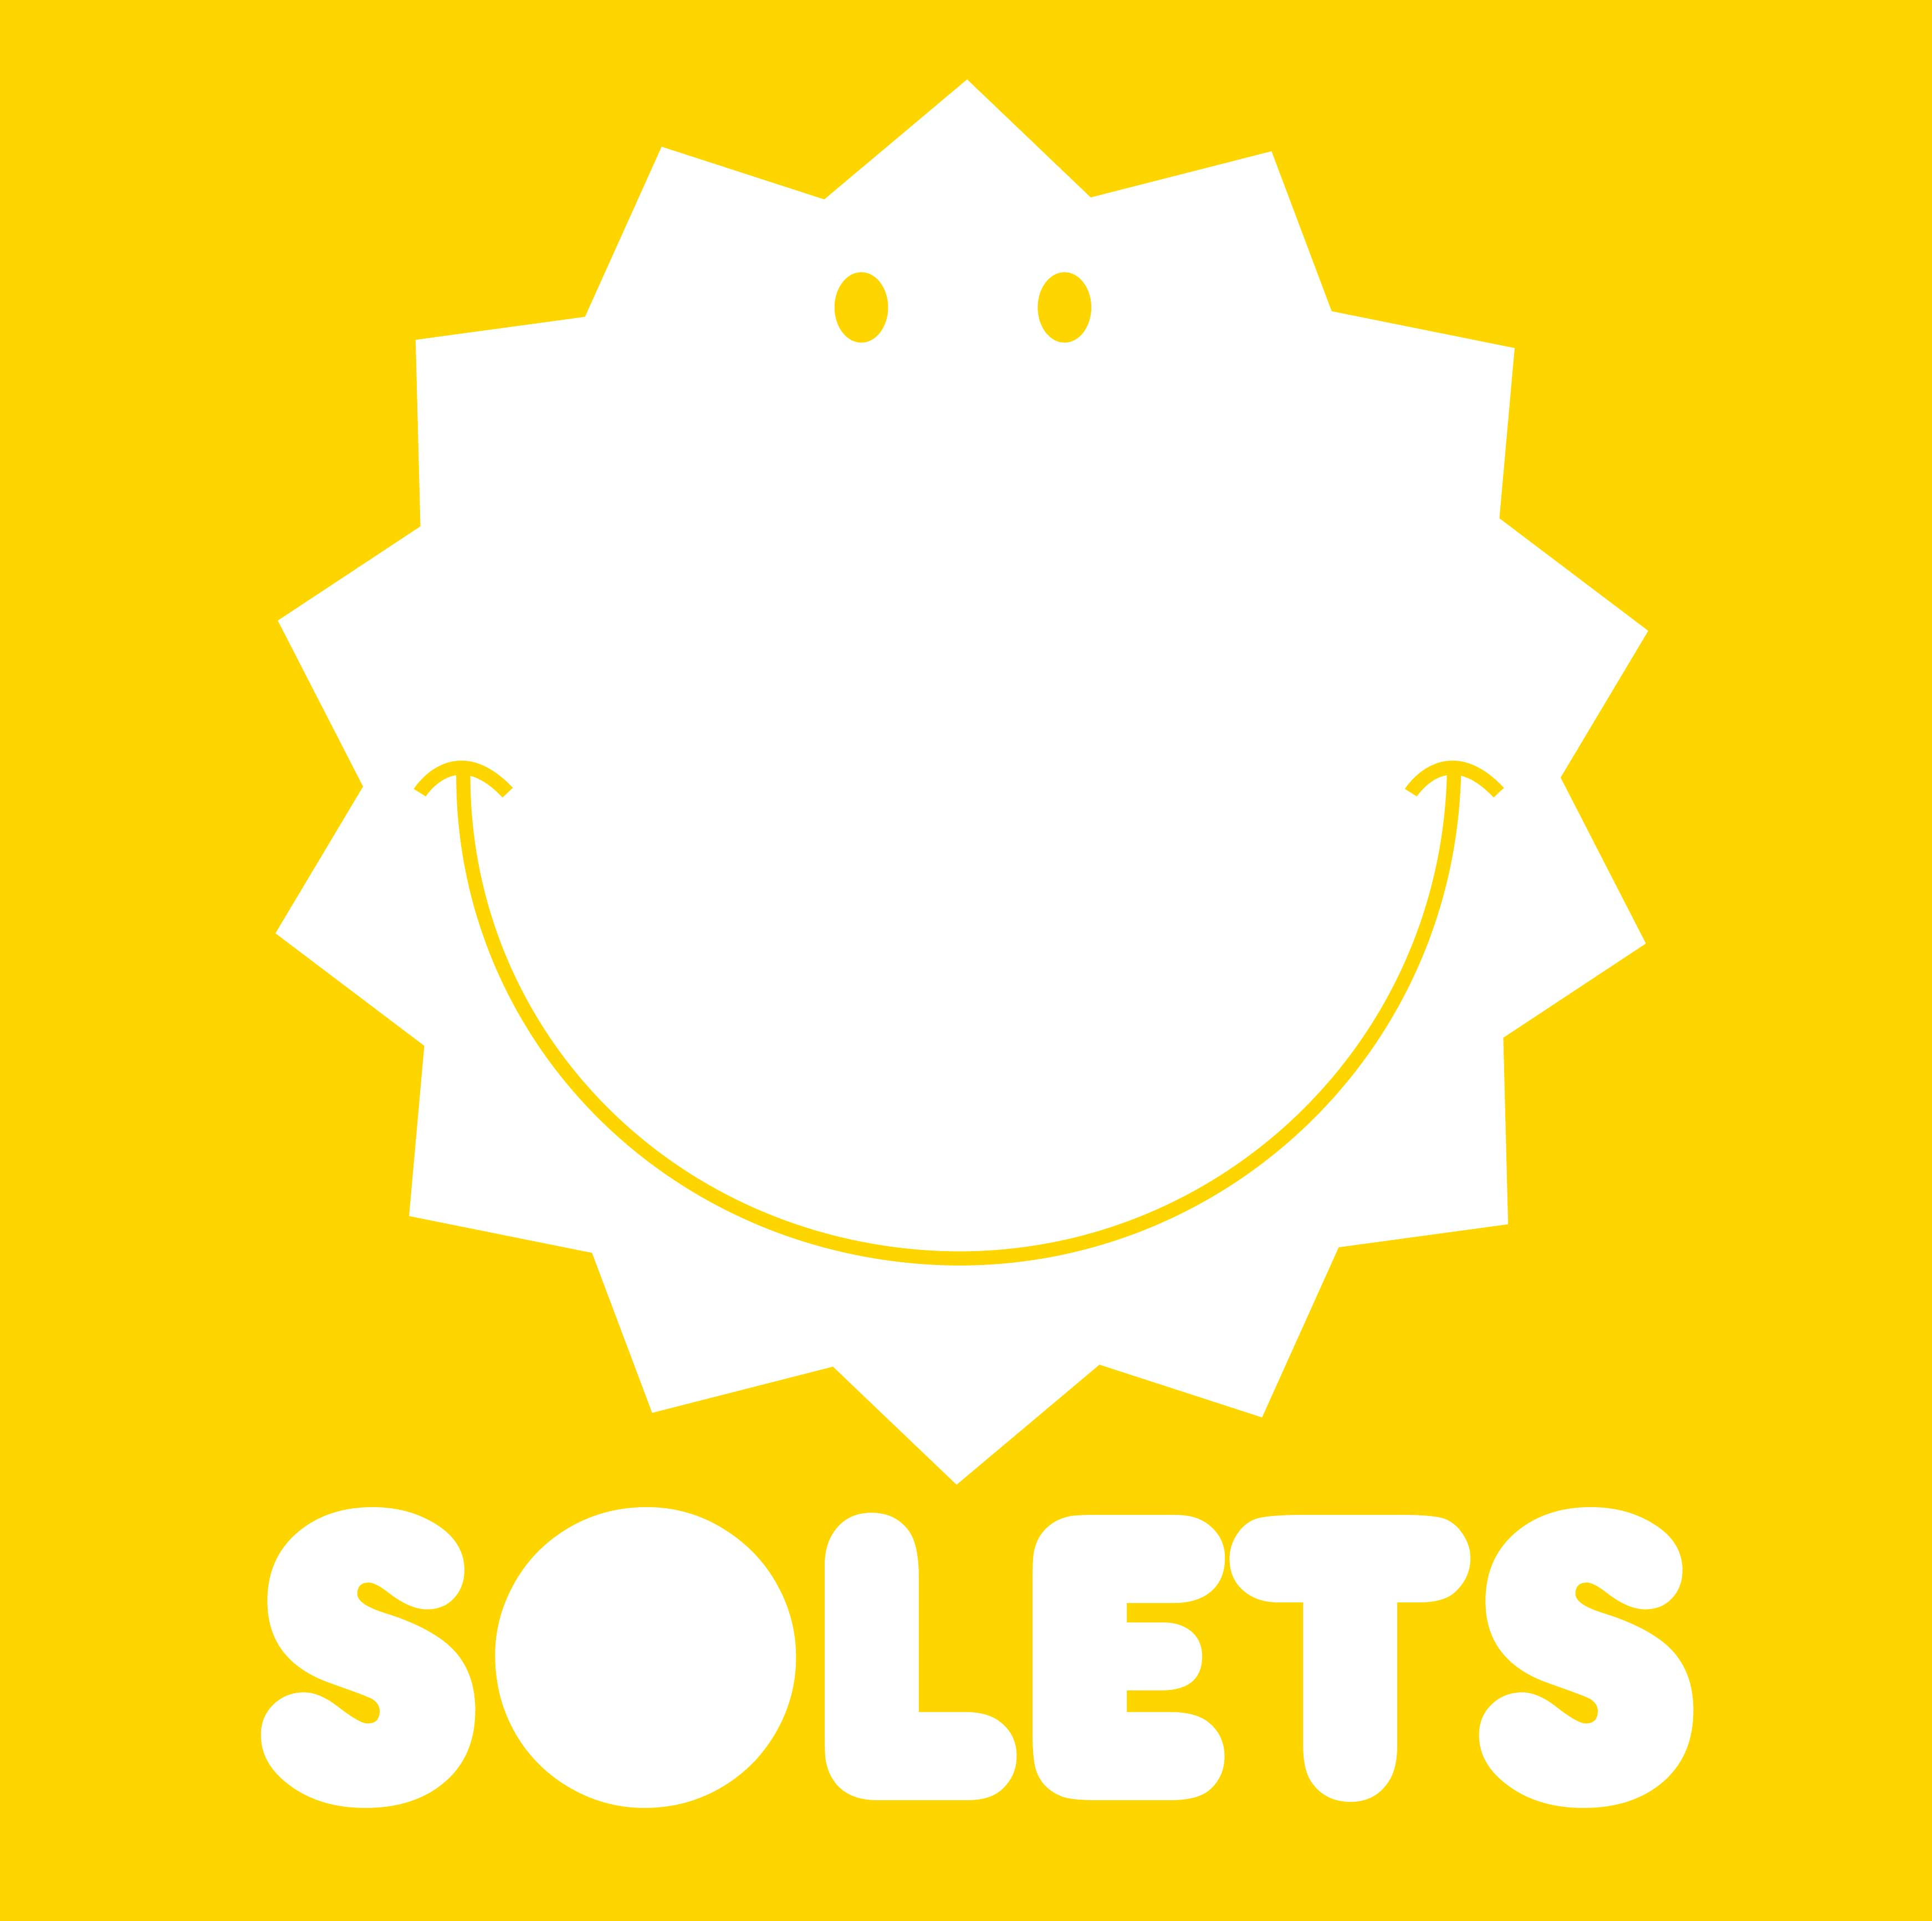 solets